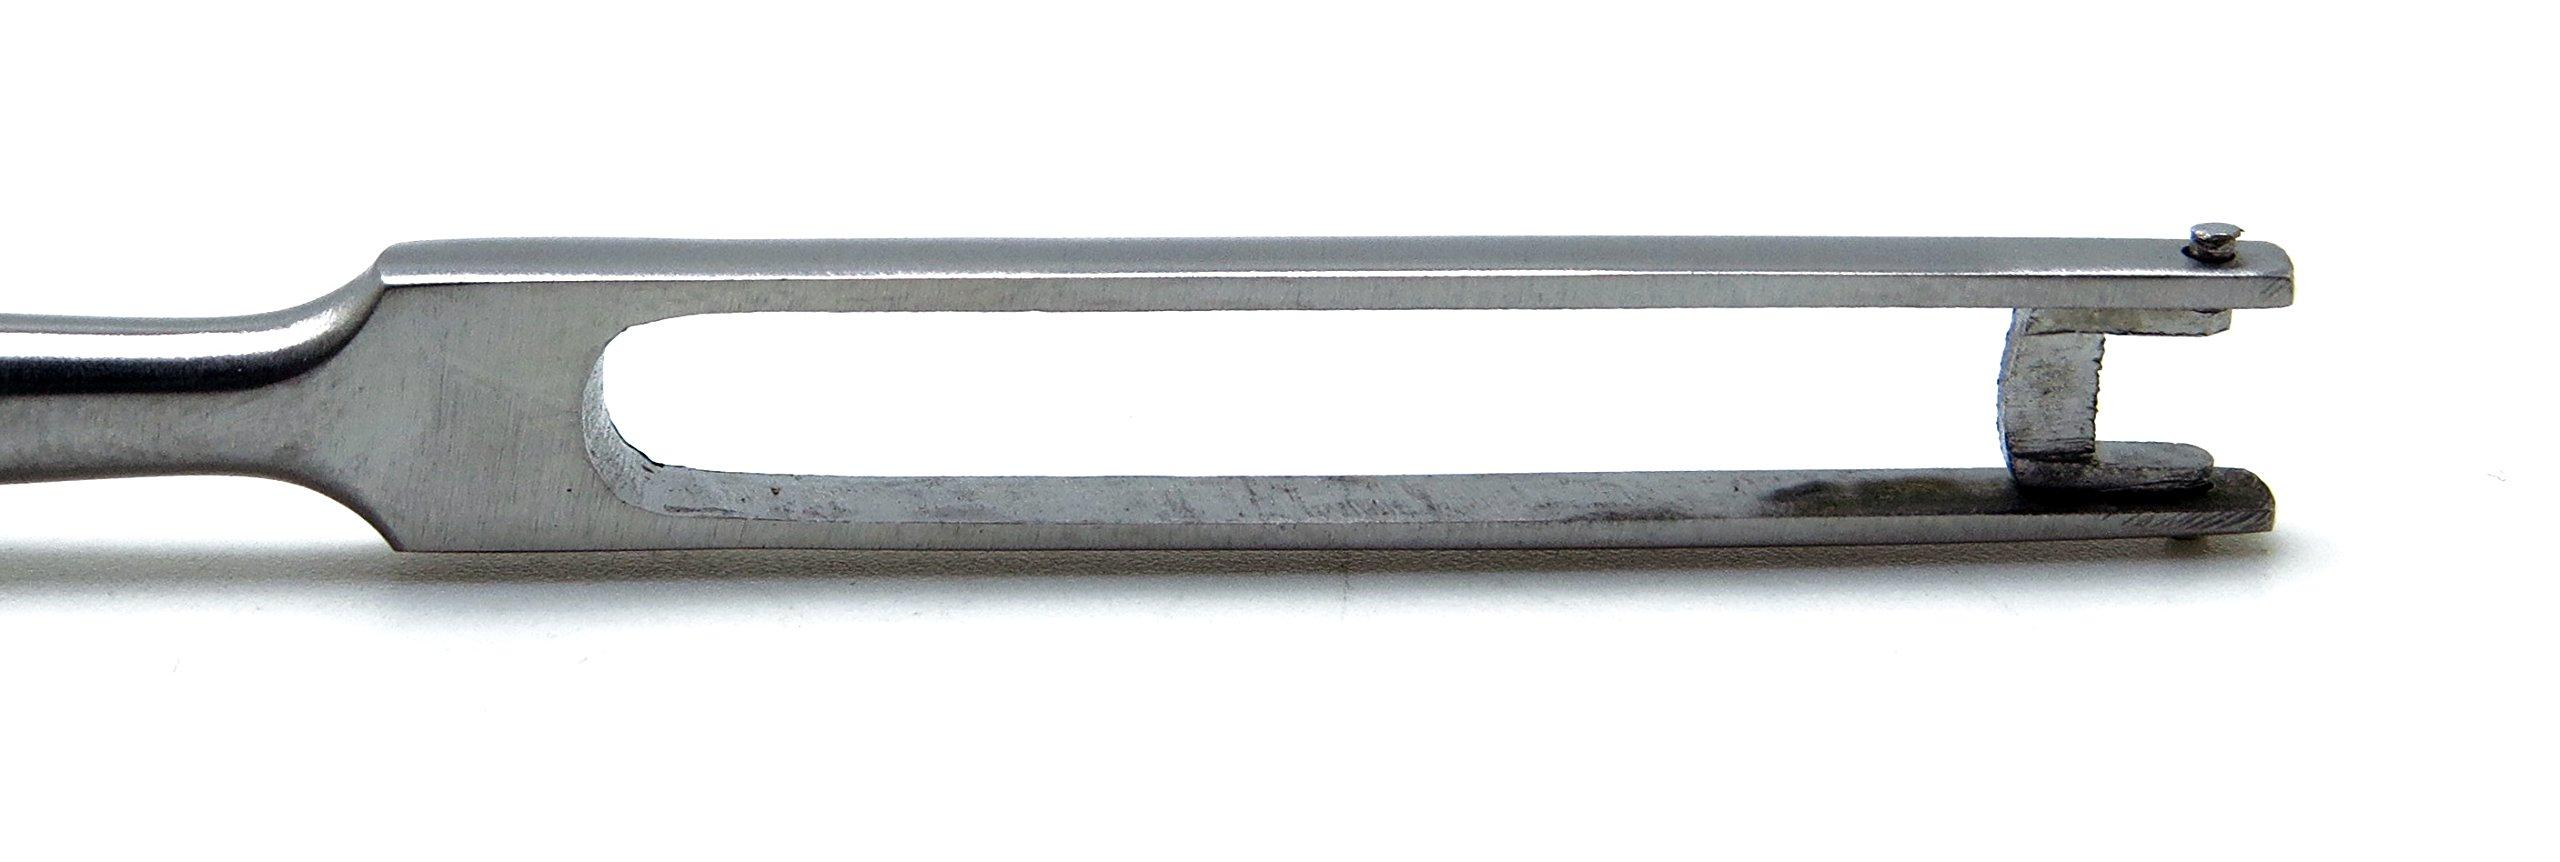 3× Ballenger Swivel Straight Knife 5mm Length 7.75'' Surgical Stainless Steel Instruments by Premium Instruments (Image #4)